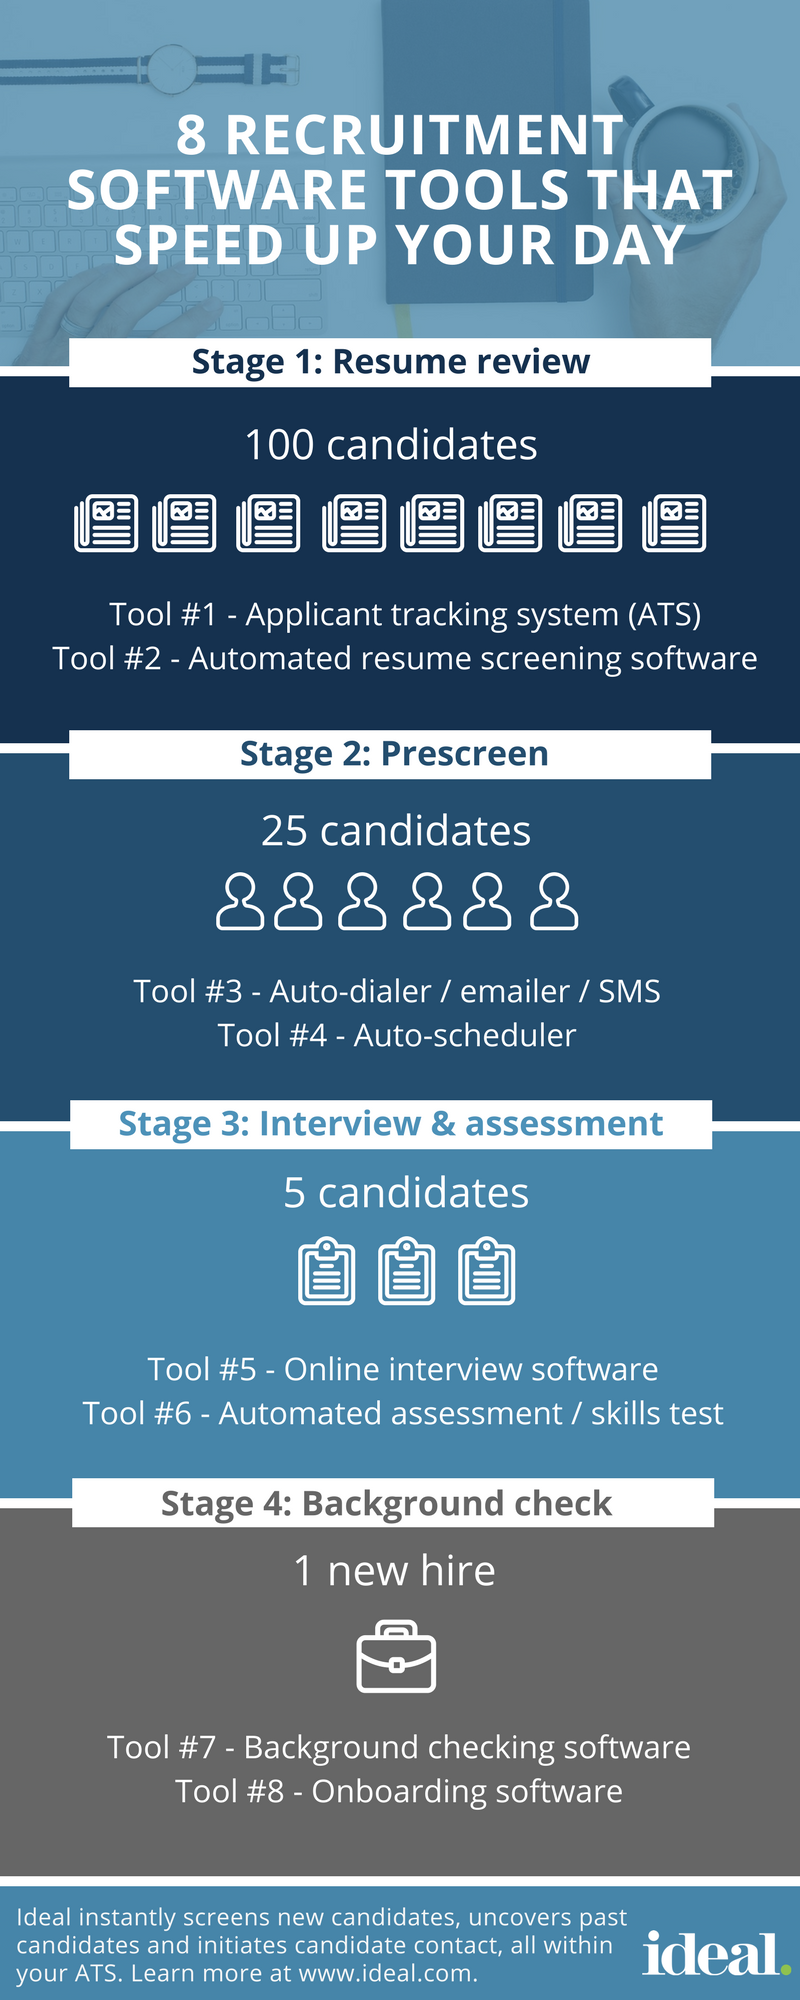 8 best recruitment software tools